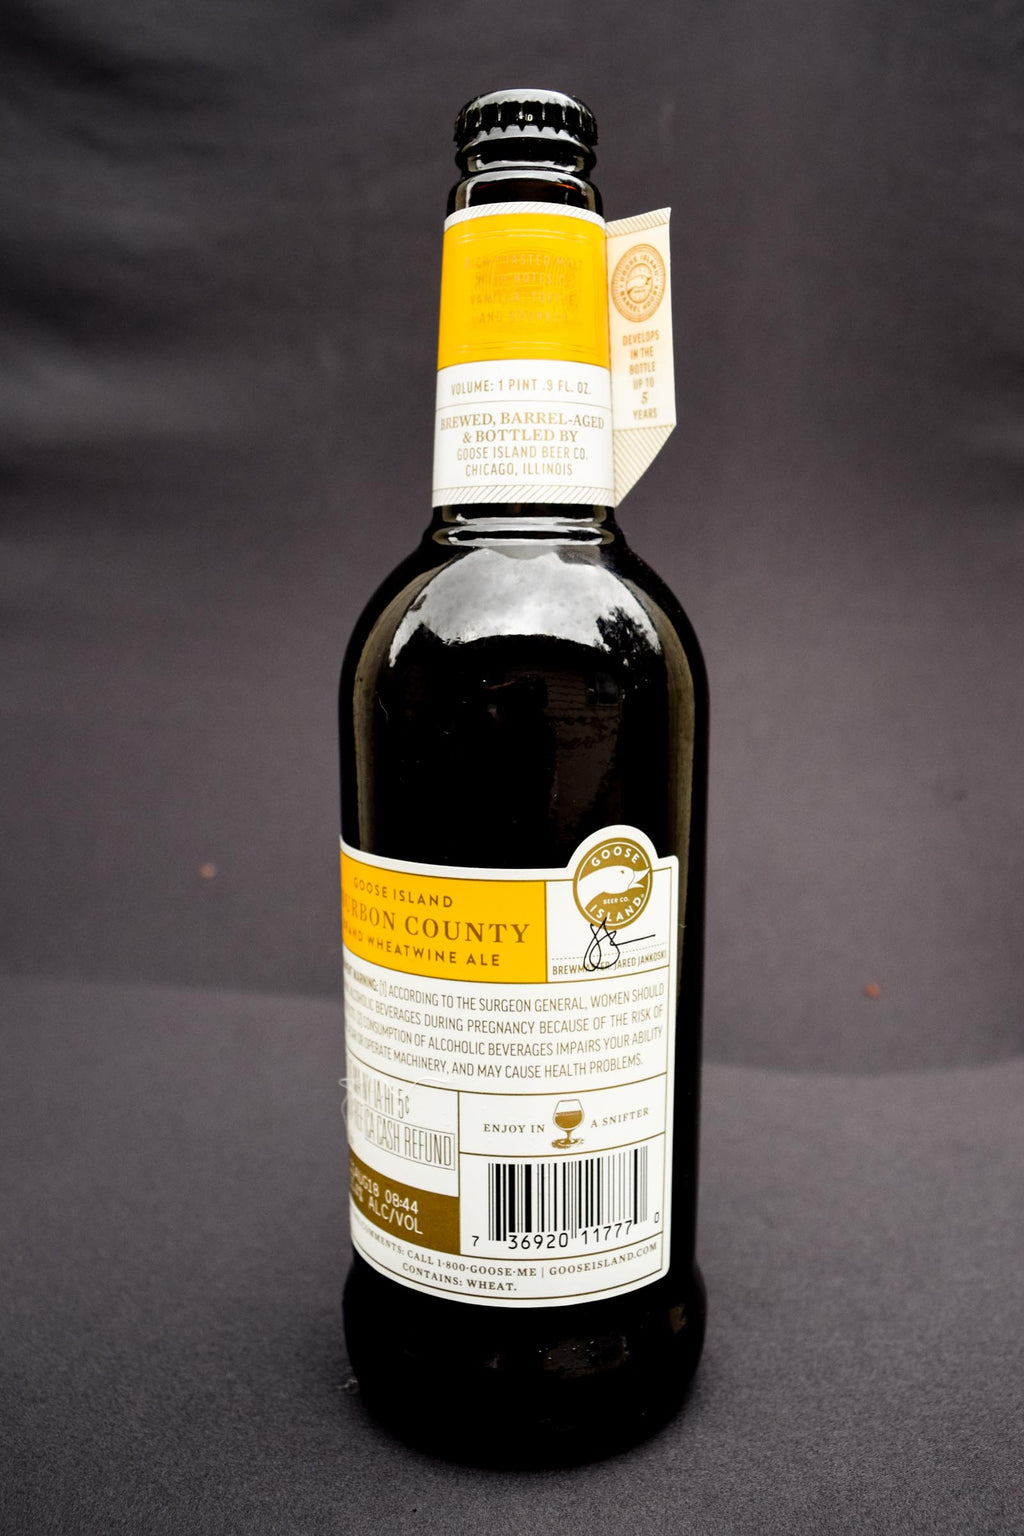 Buy Goose Island Beer Co. Bourbon County Brand Wheatwine Online